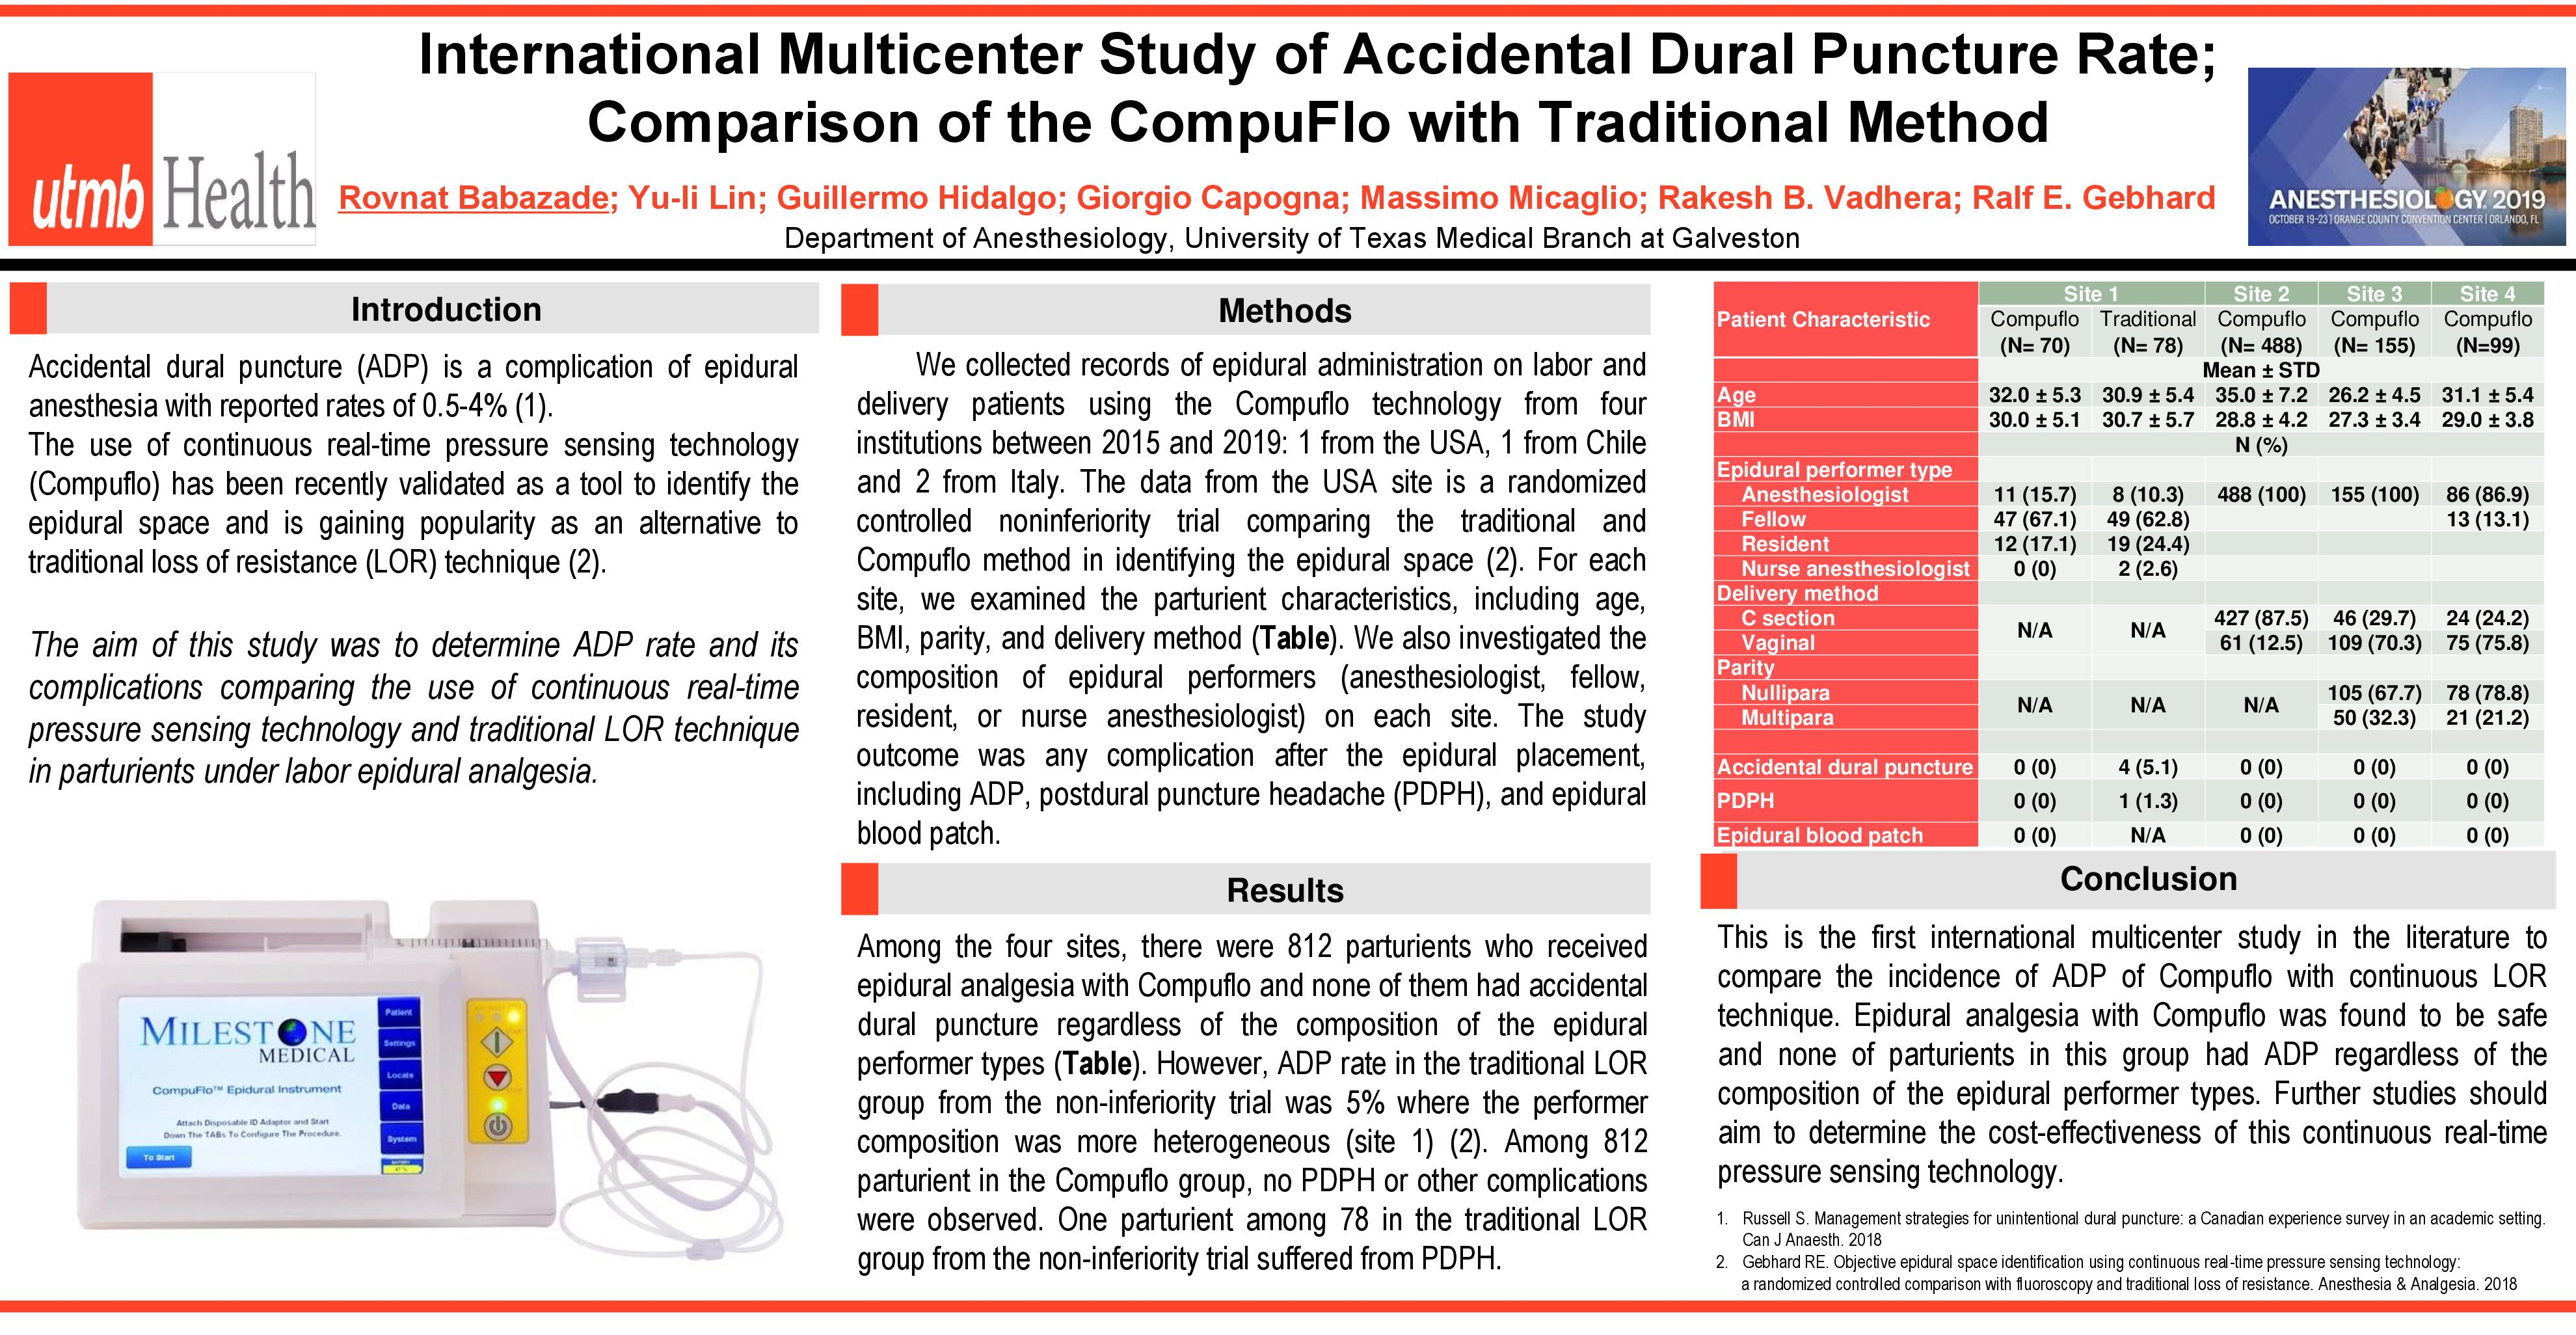 International Multicenter Study of Accidental Dural Puncture Rate; Comparison of the CompuFlo with Traditional Method ANESTHESIOLOGY® 2019 Annual Meeting in Orlando, Florida